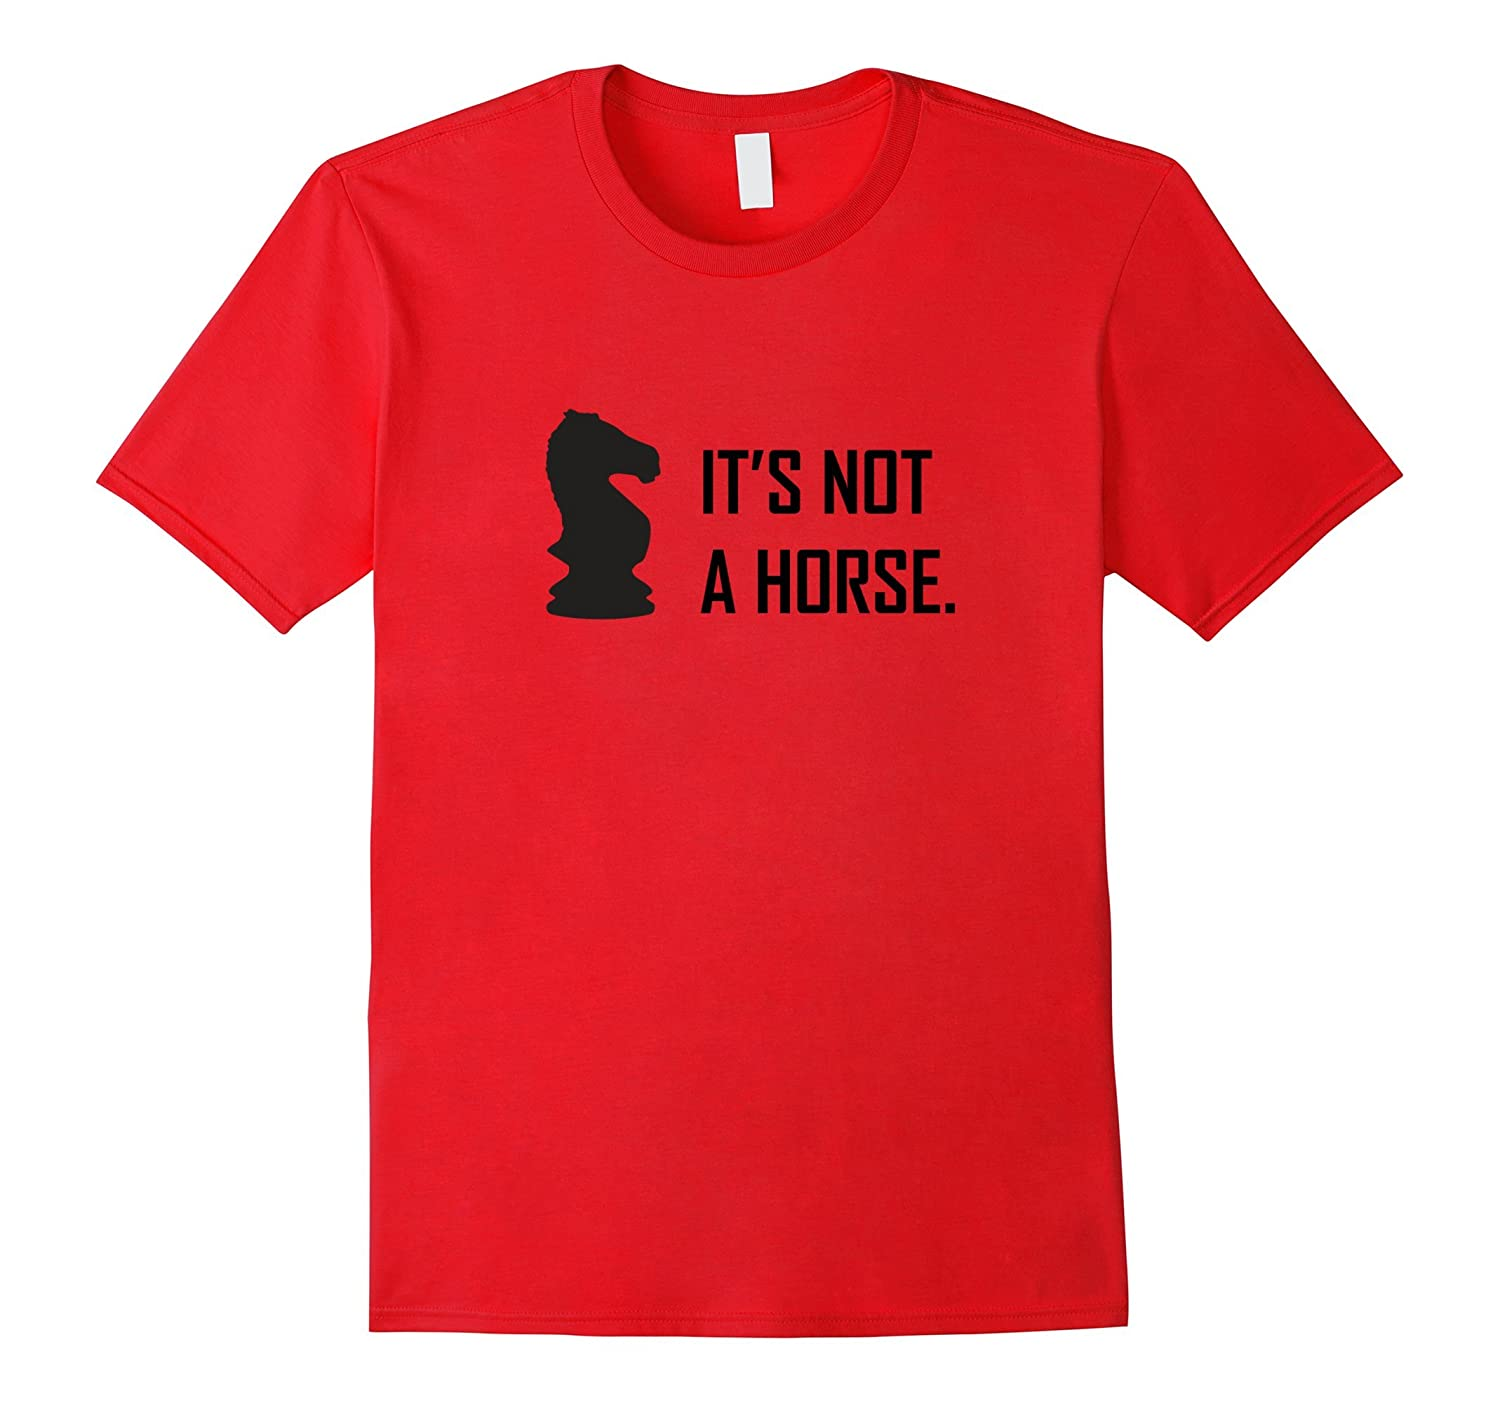 Funny Chess Shirt, It's Not A Horse Knight Piece Player Gift